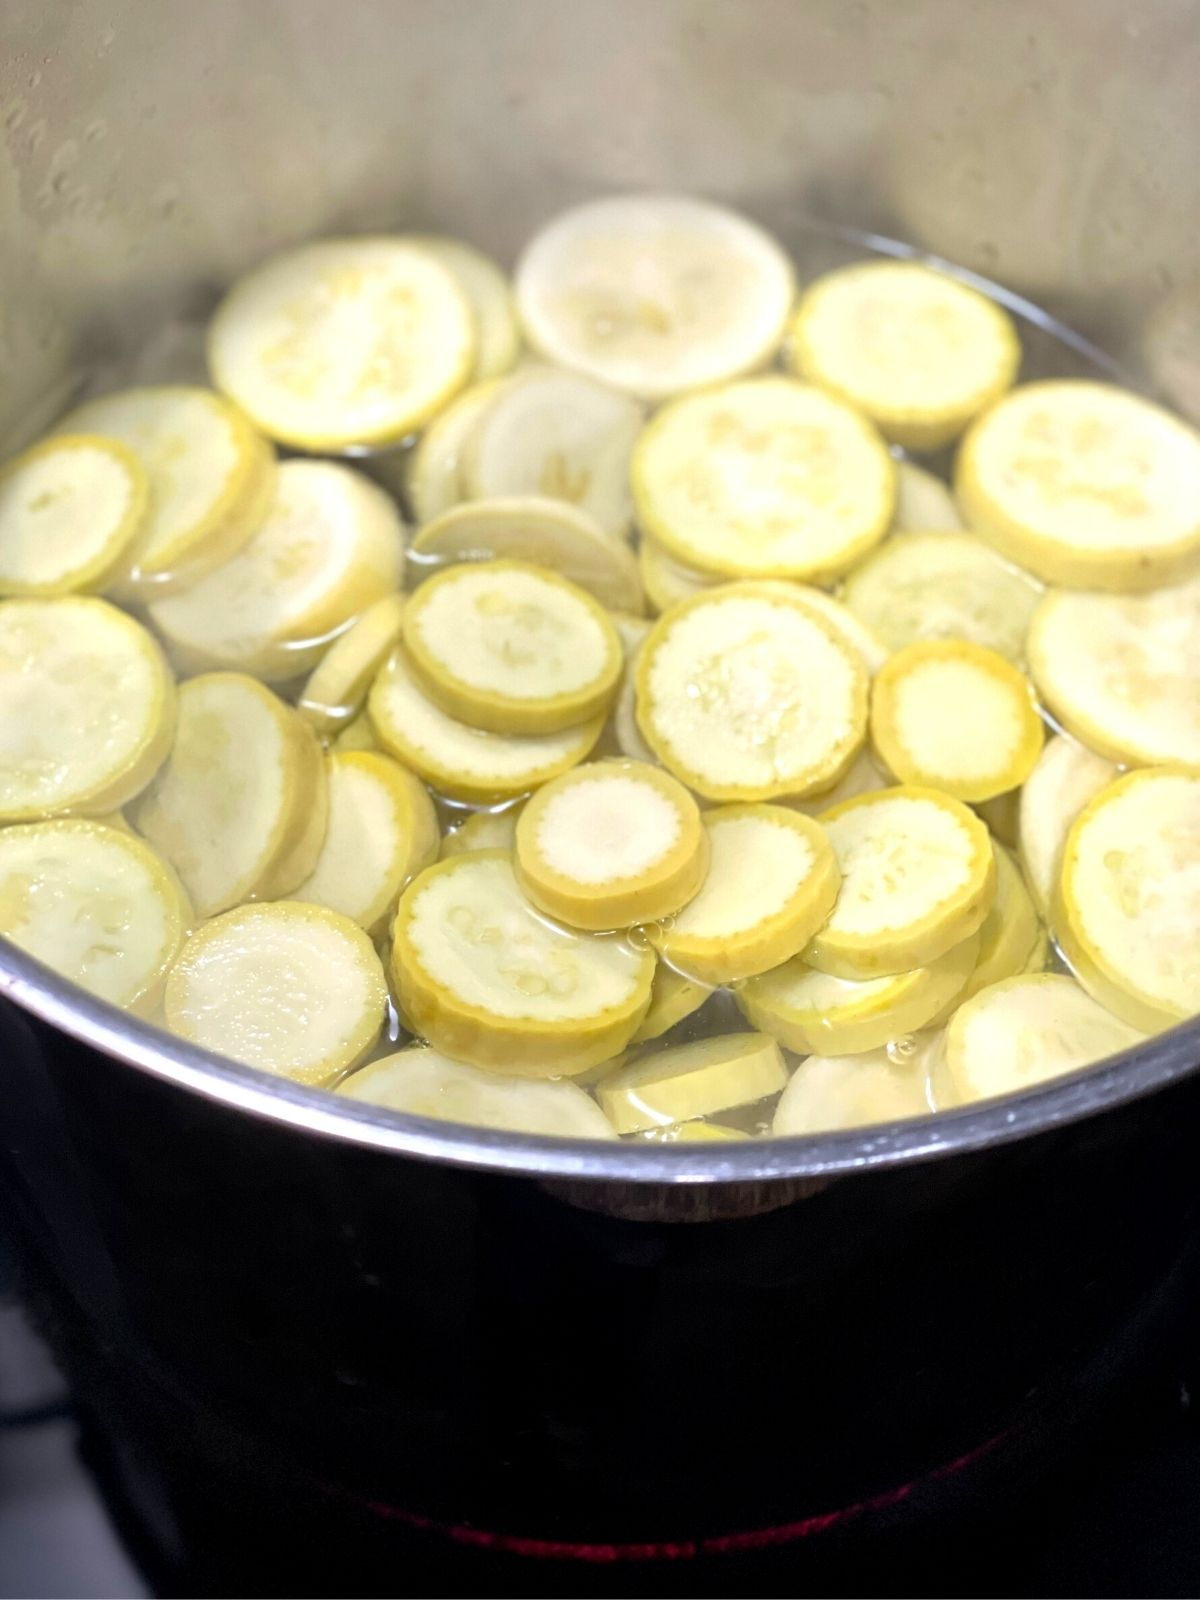 Squash slices being blanched in a large pot of boiling water.